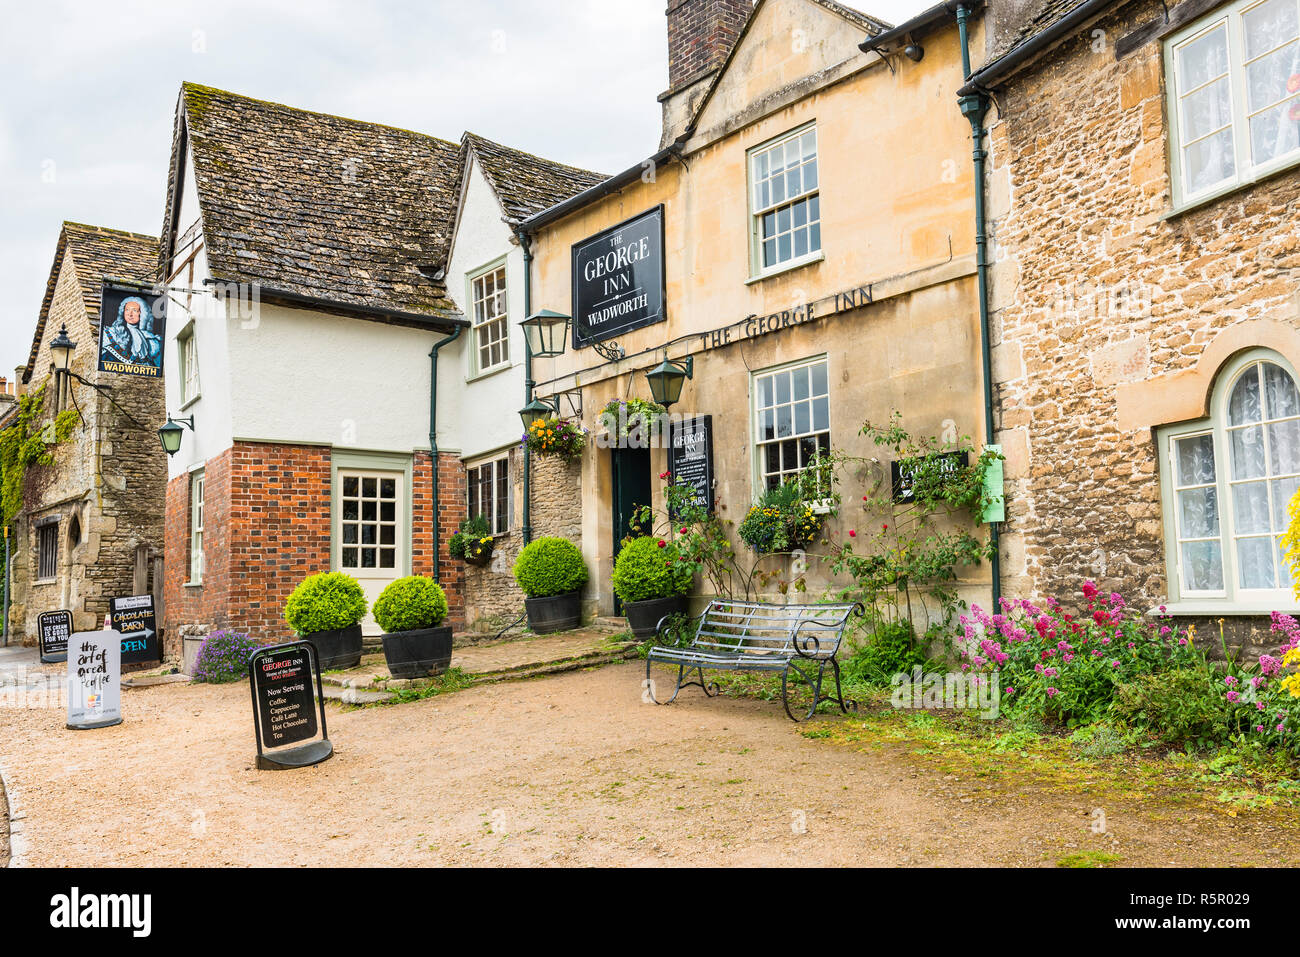 The George Inn in Lacock Village, Wiltshire. A Wadworth Brewery English pub. - Stock Image